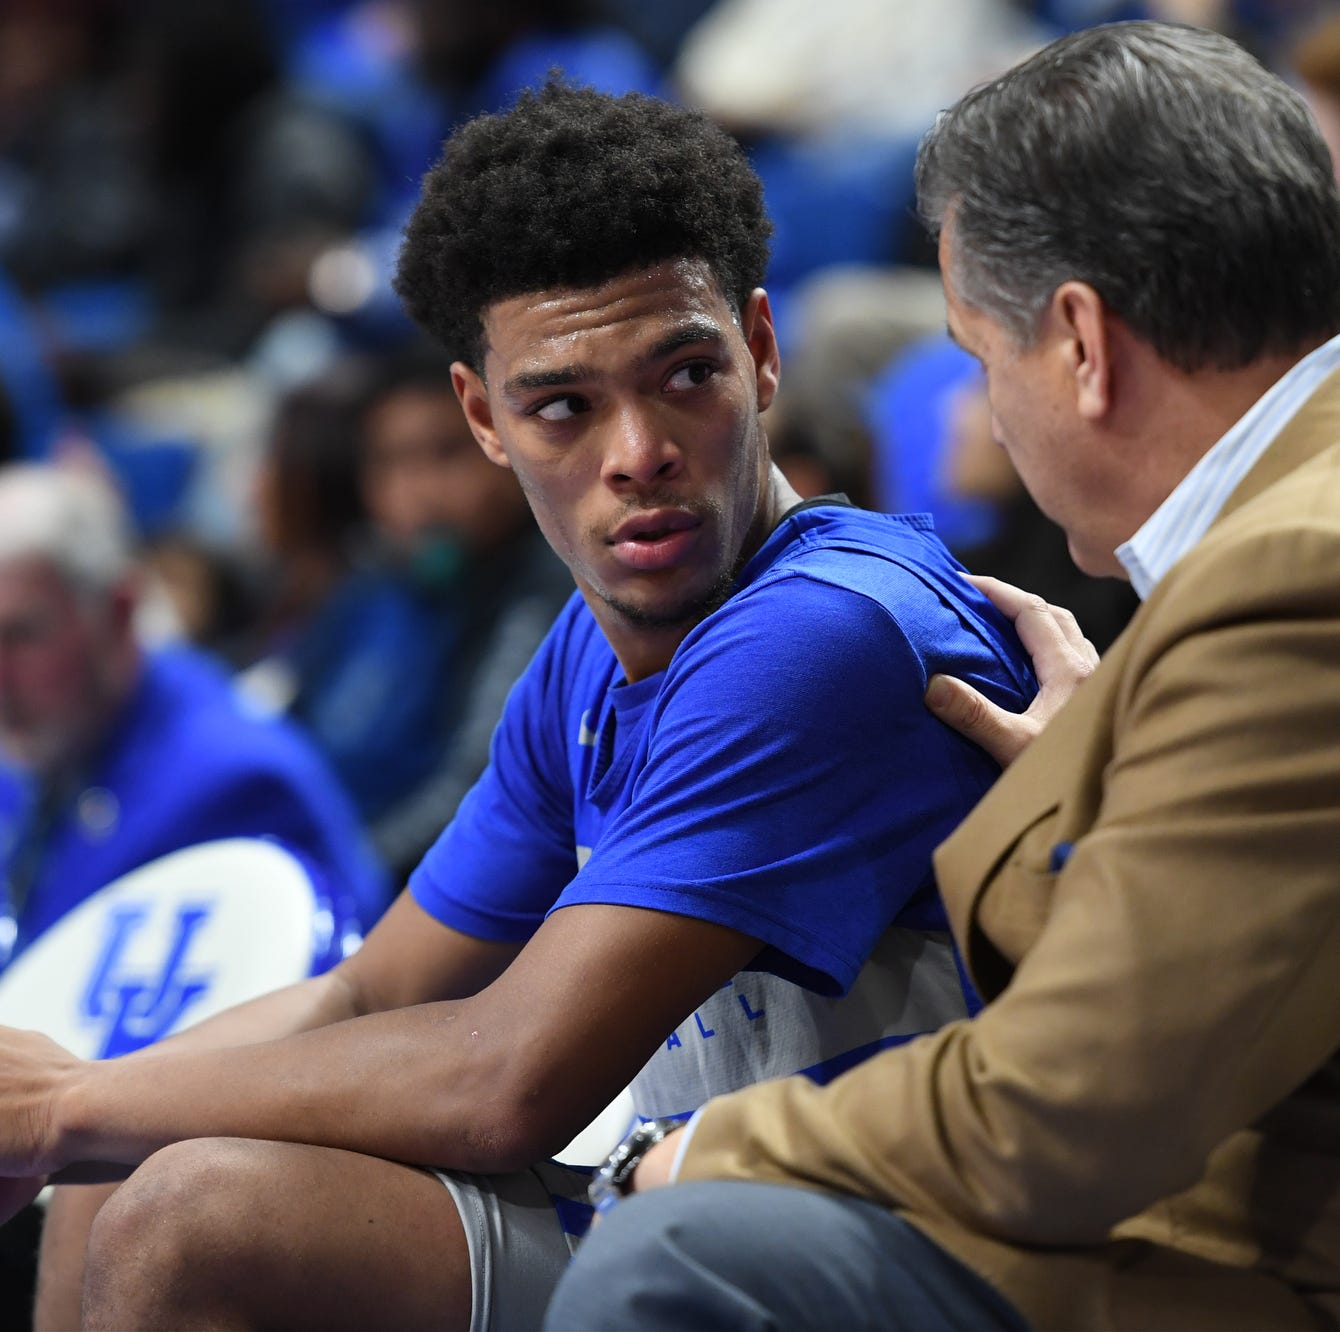 John Calipari after Quade Green transfer: 'I'm not panicked'